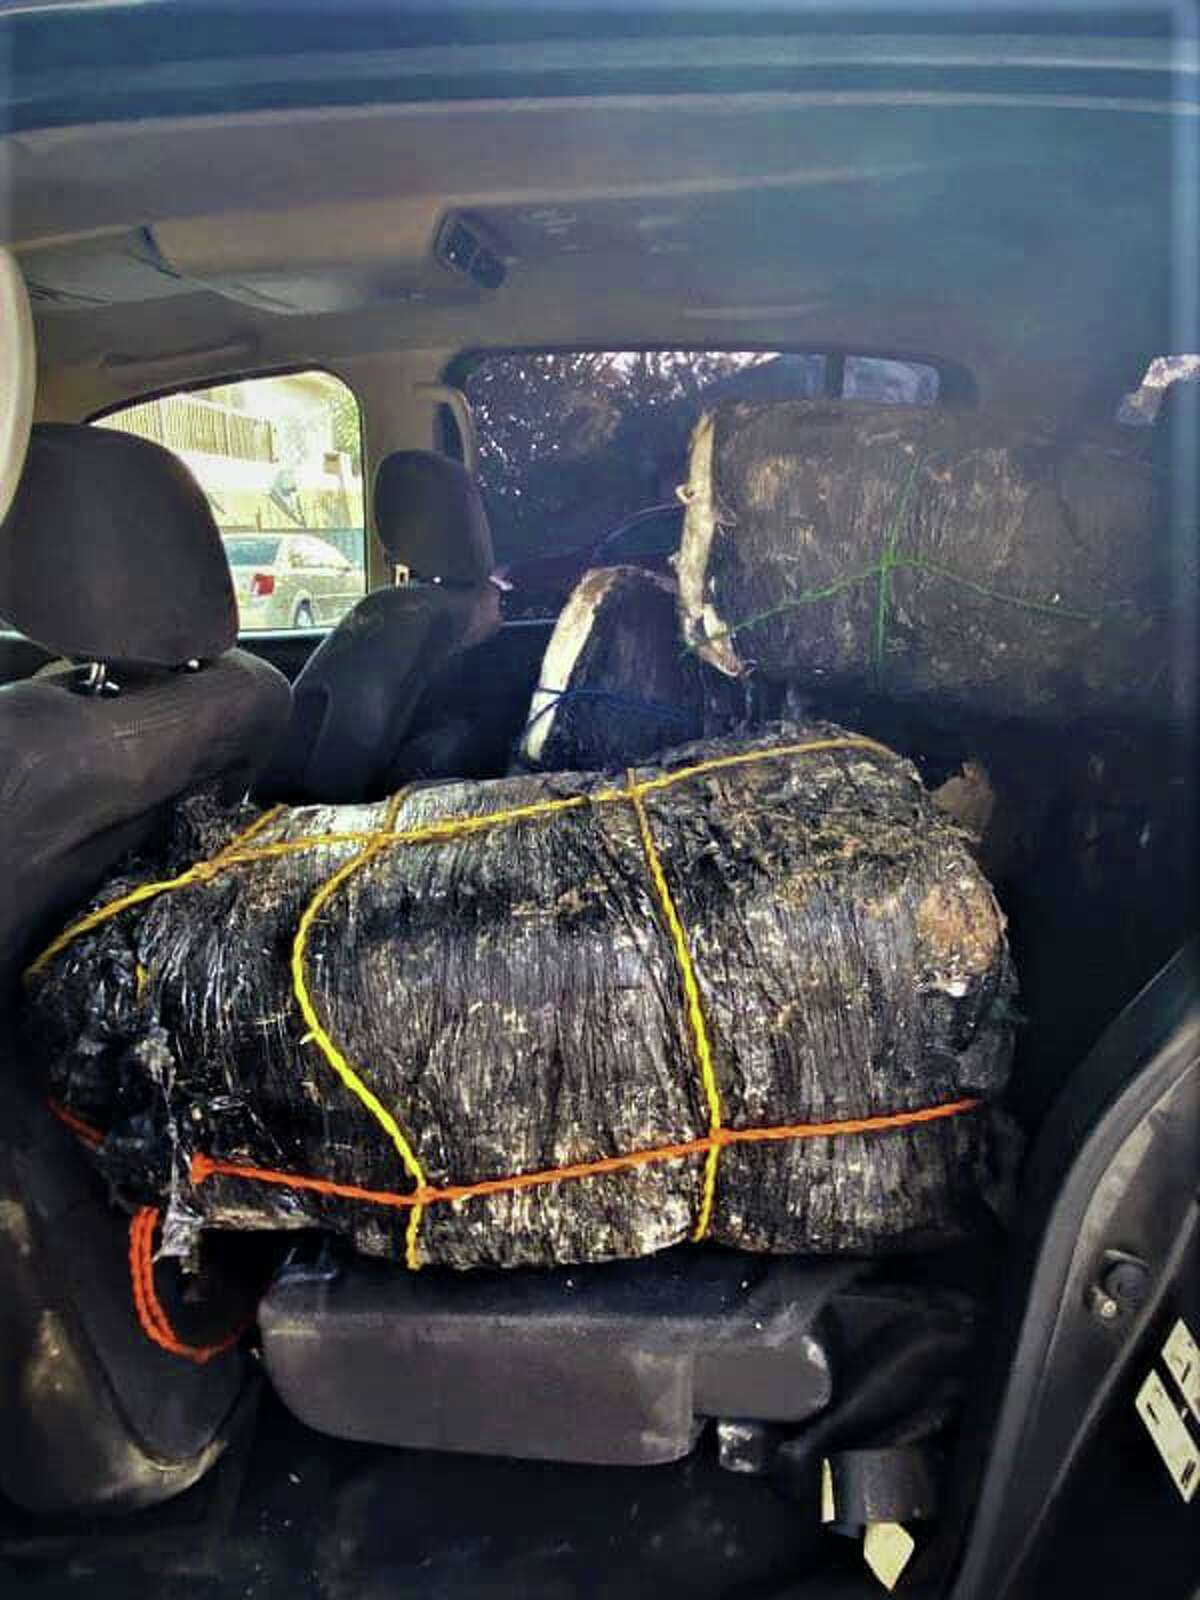 U.S. Border Patrol said this vehicle loaded with approximately $381,000 in marijuana was abandoned in the parking lot of Father McNaboe Park. The contraband weighed 477.3 pounds.